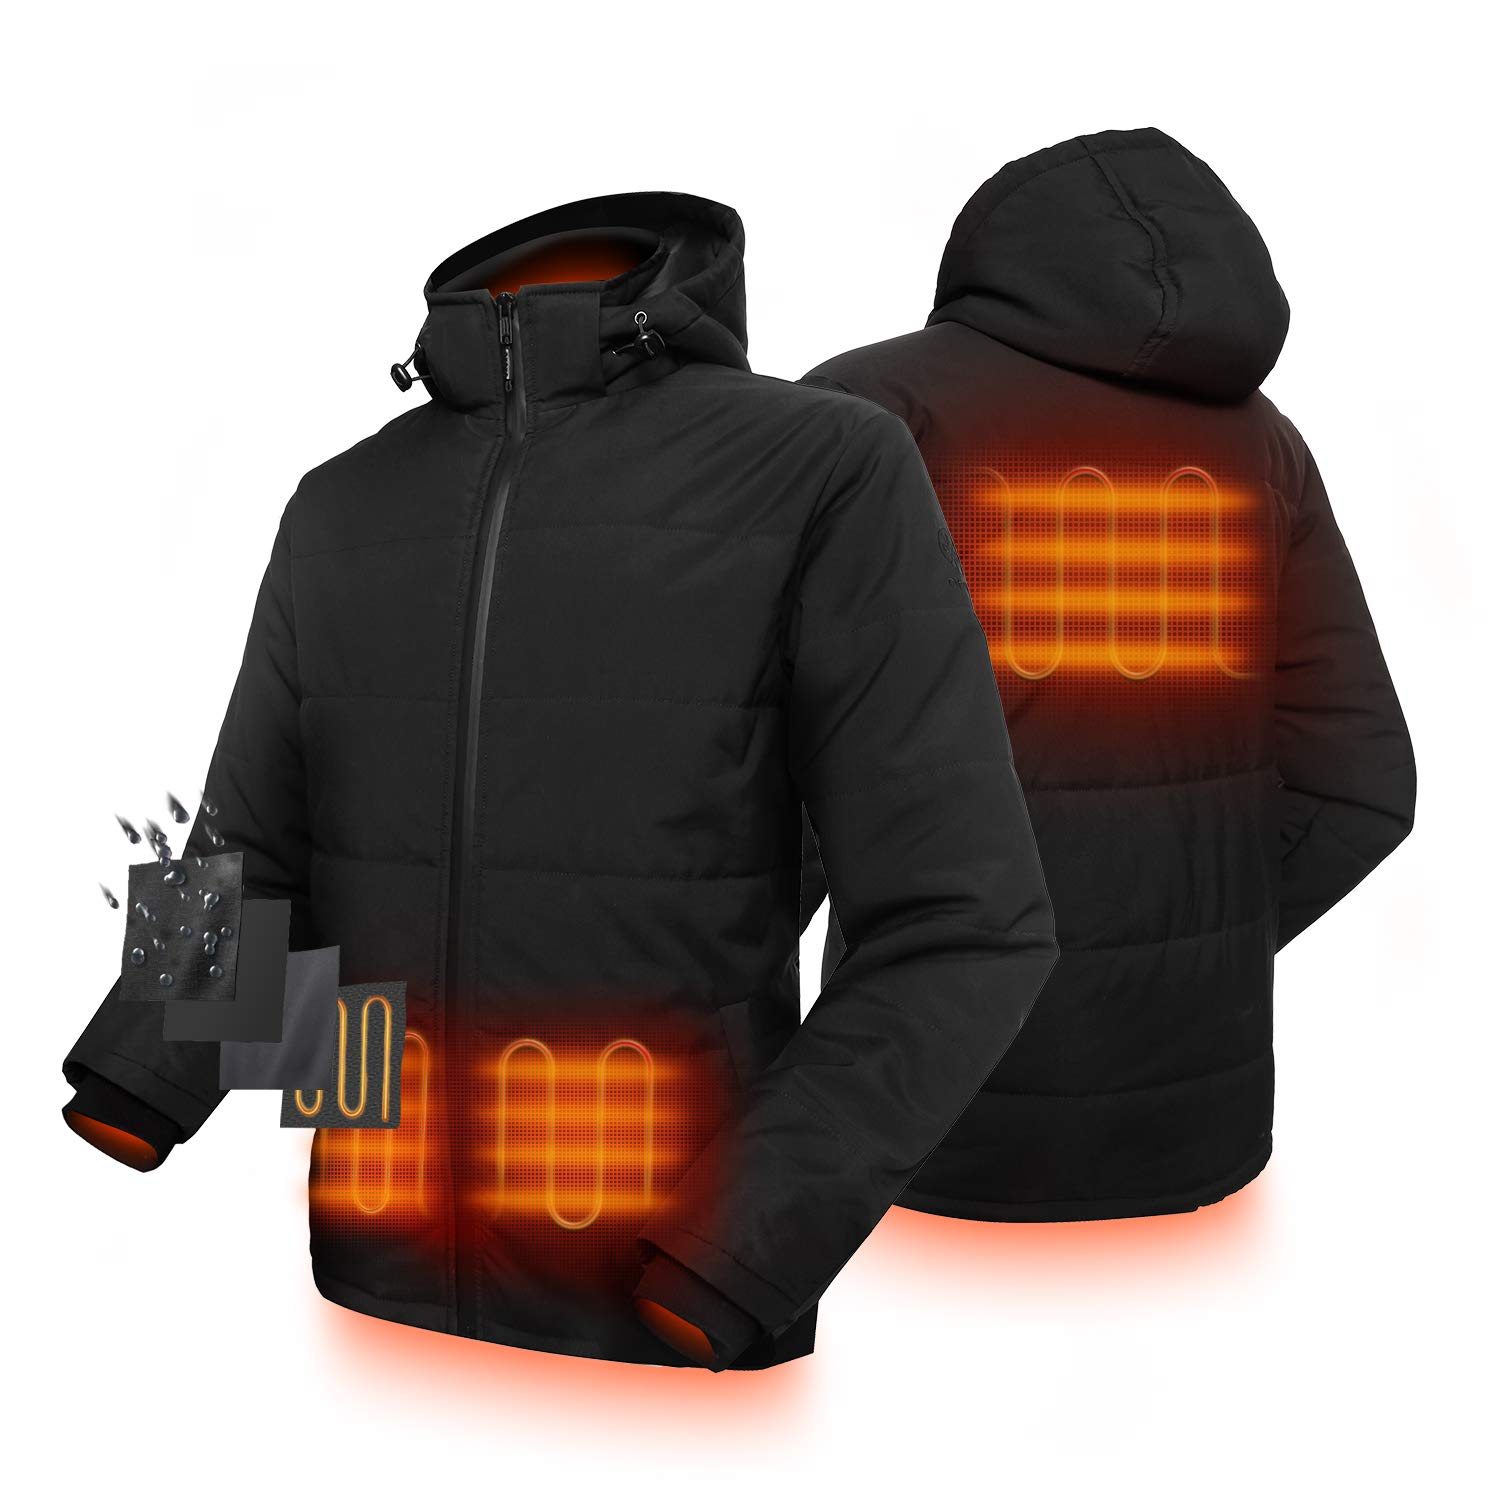 ORORO Mens Lightweight Padded Heated Jacket with SMAWARM Insulation and Detachable Hood (Battery Included)